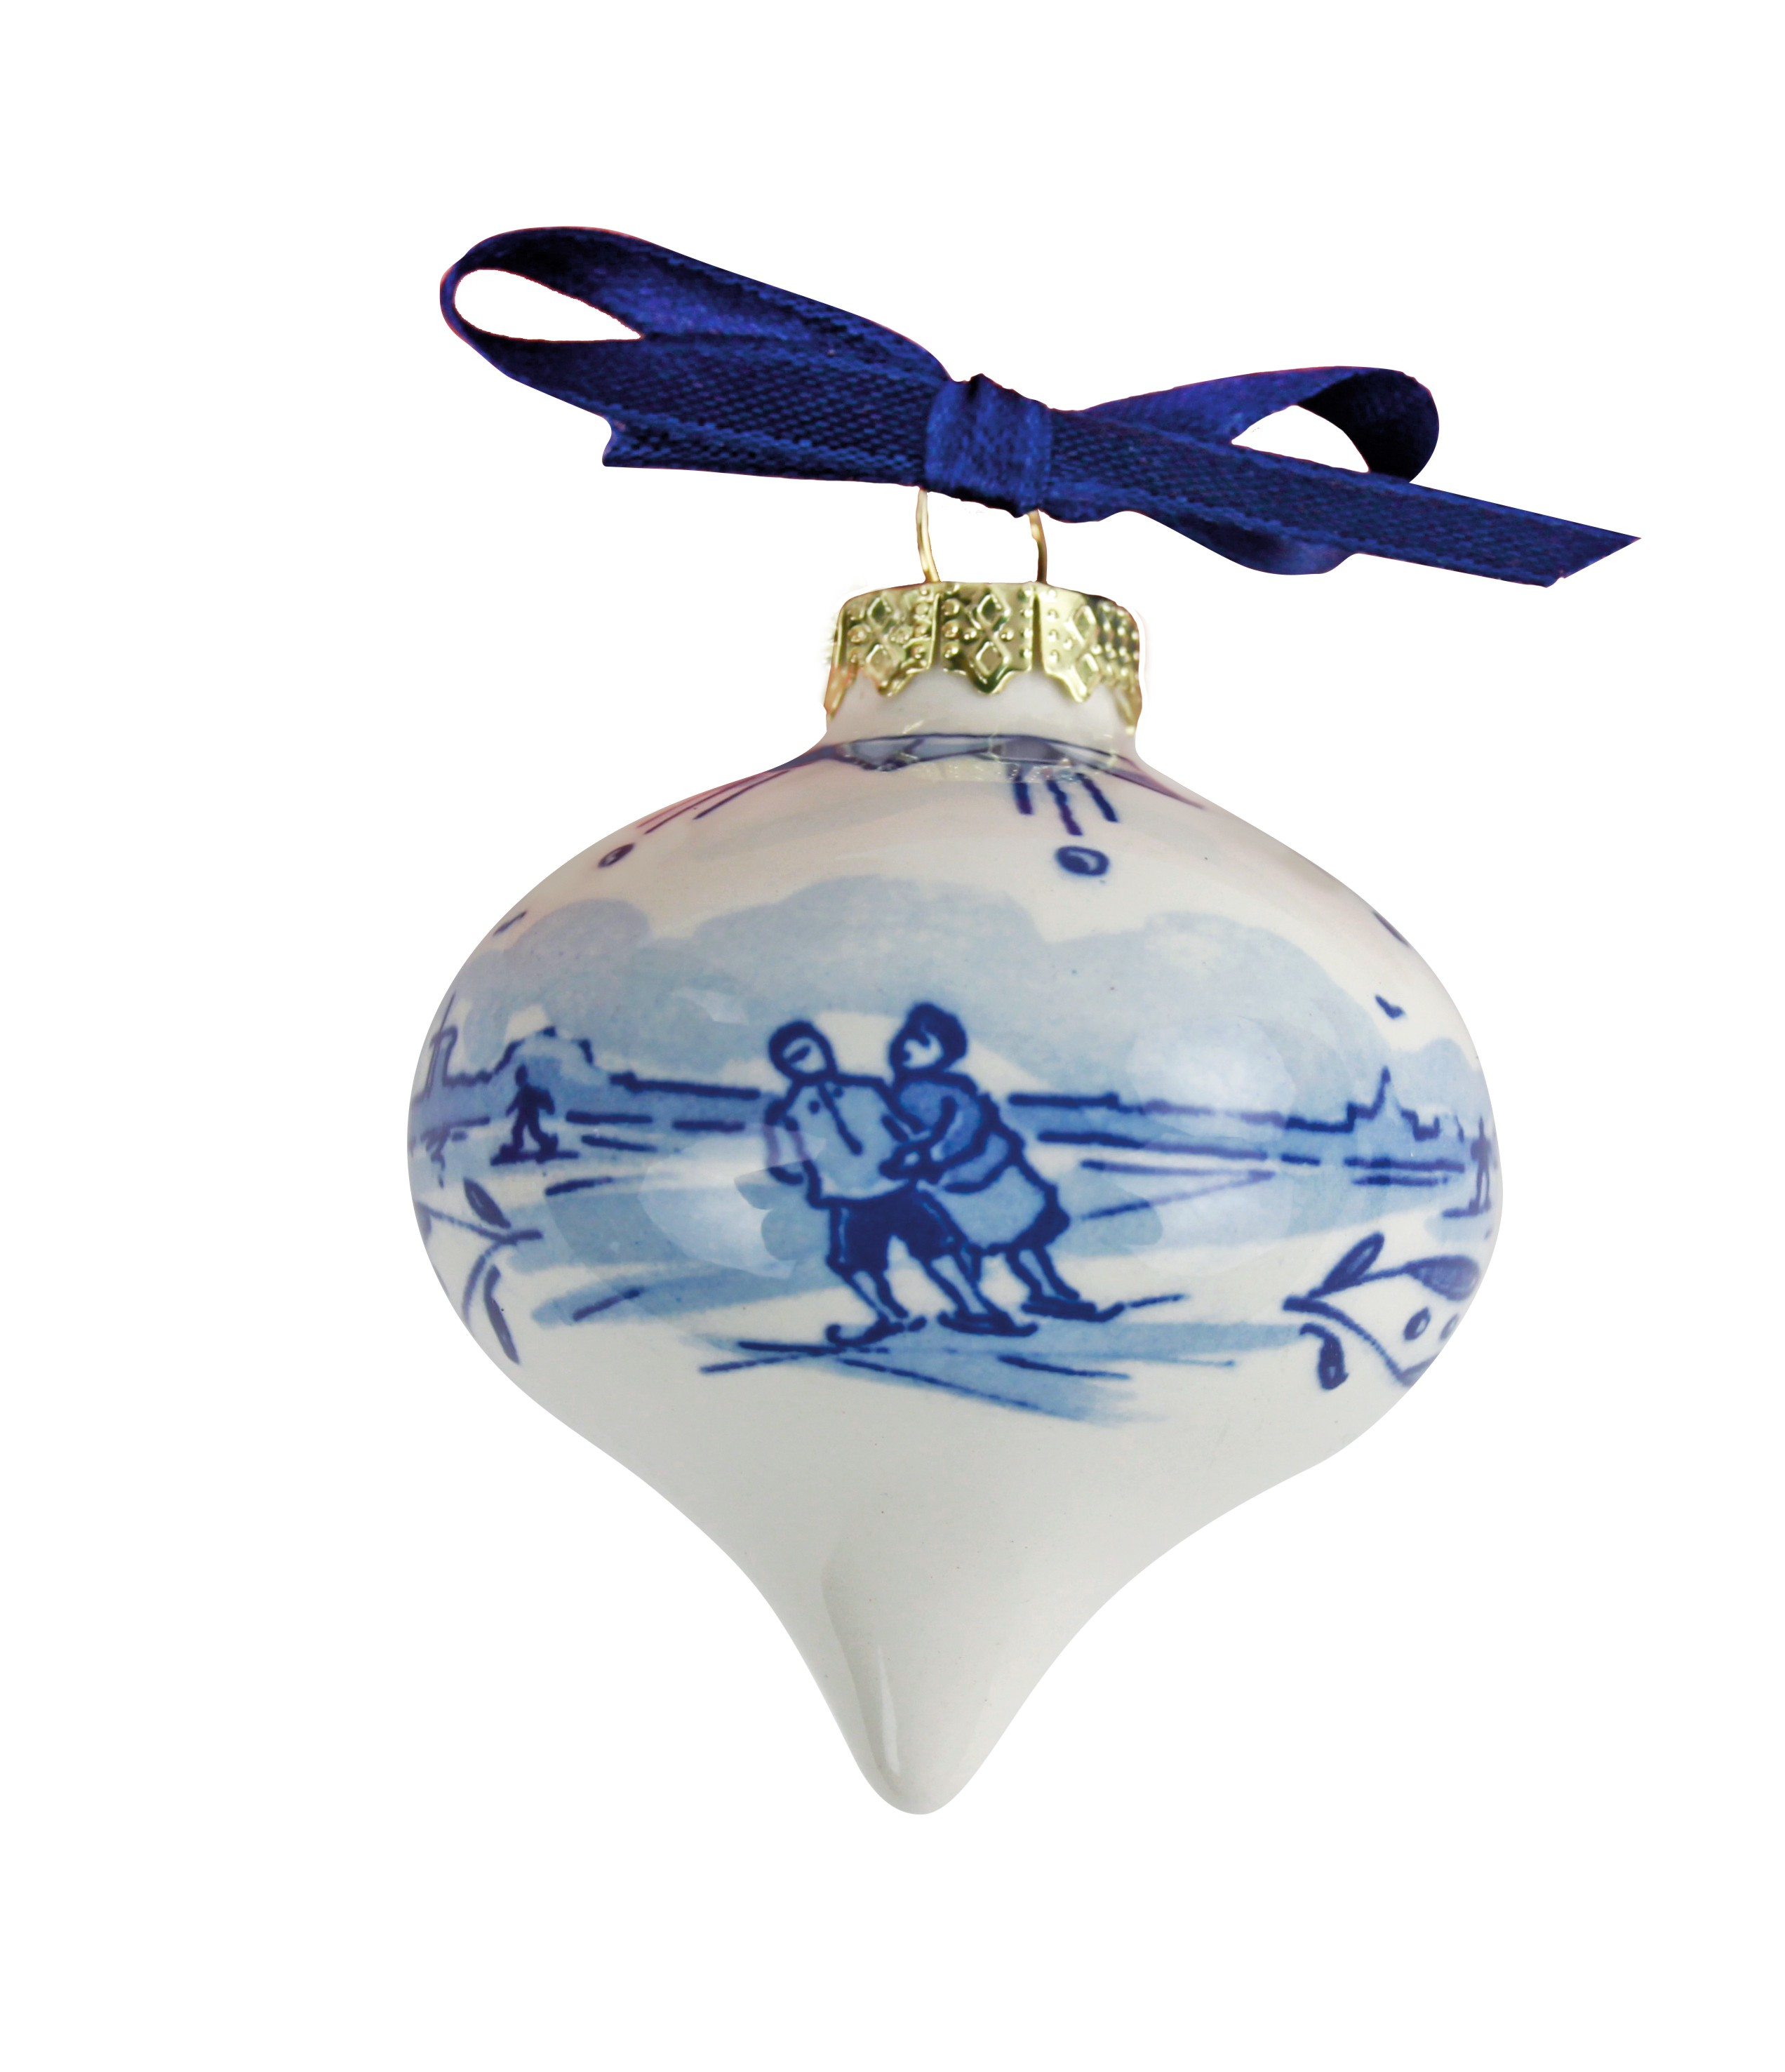 Superb Delft Blue Christmas Ornaments Part - 11: ... Original Delft Blue Christmas Drop 6 Cm By Royal Delft To Put In Your Christmas  Tree ...